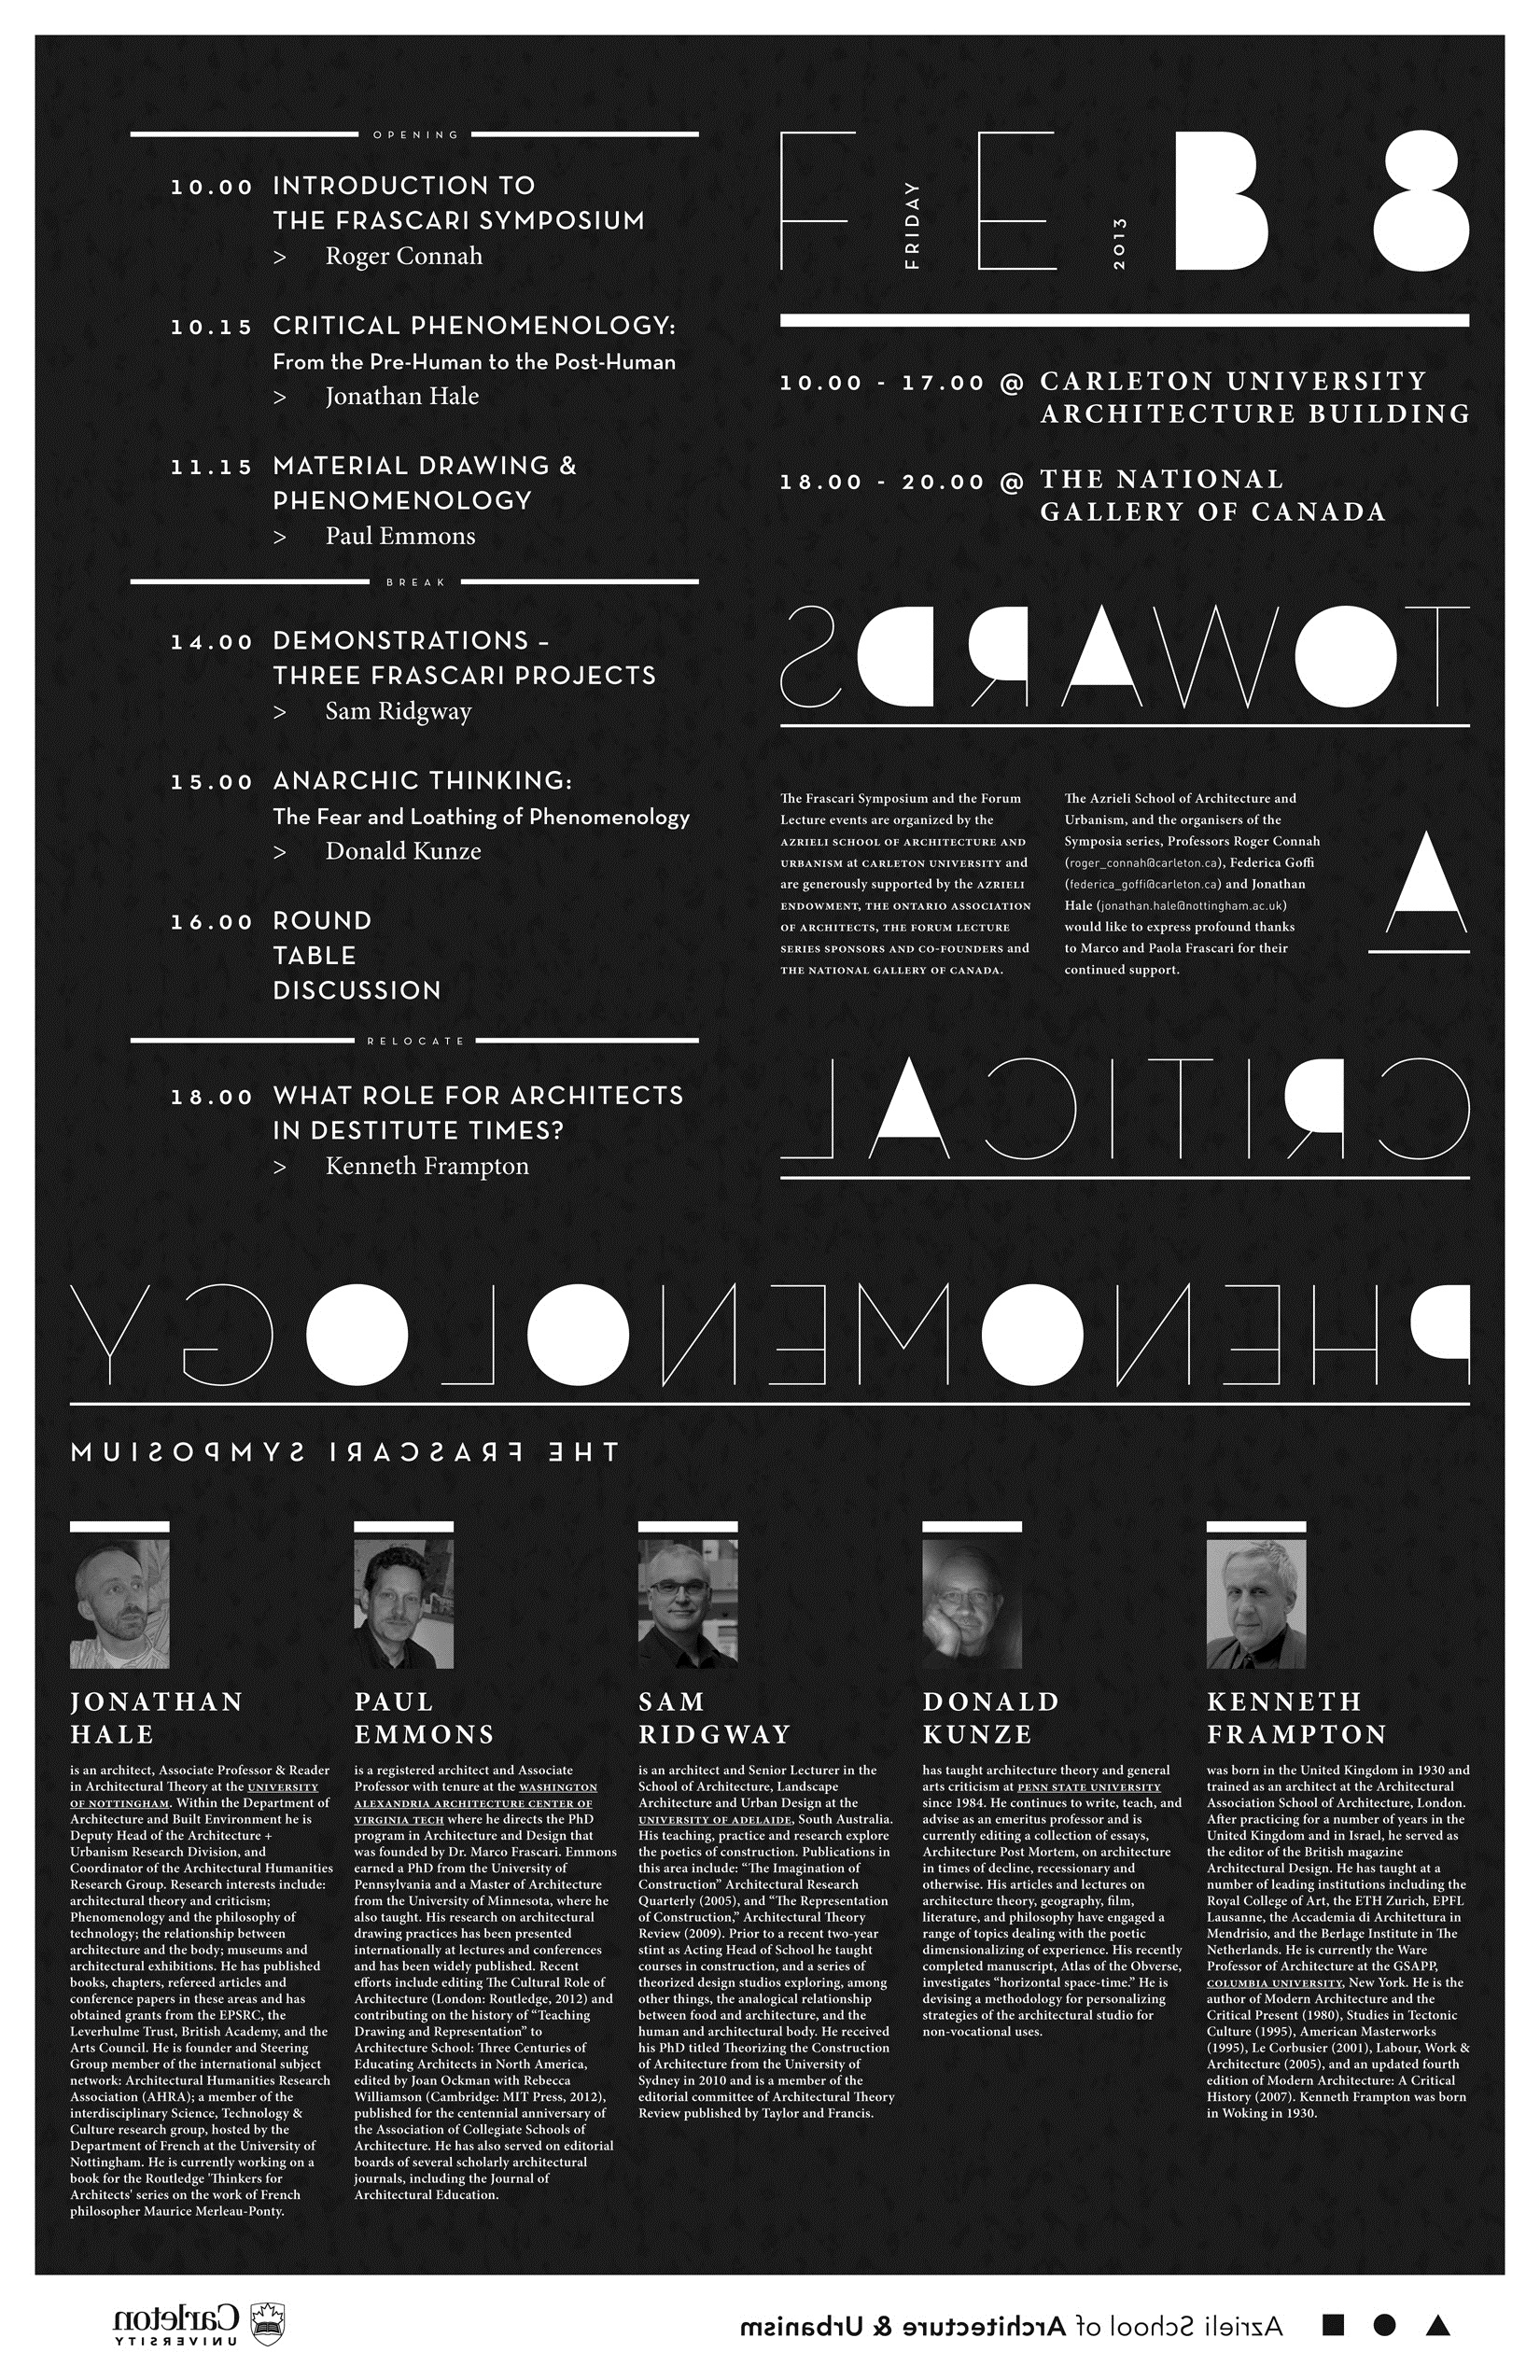 Lectures | bodyoftheory